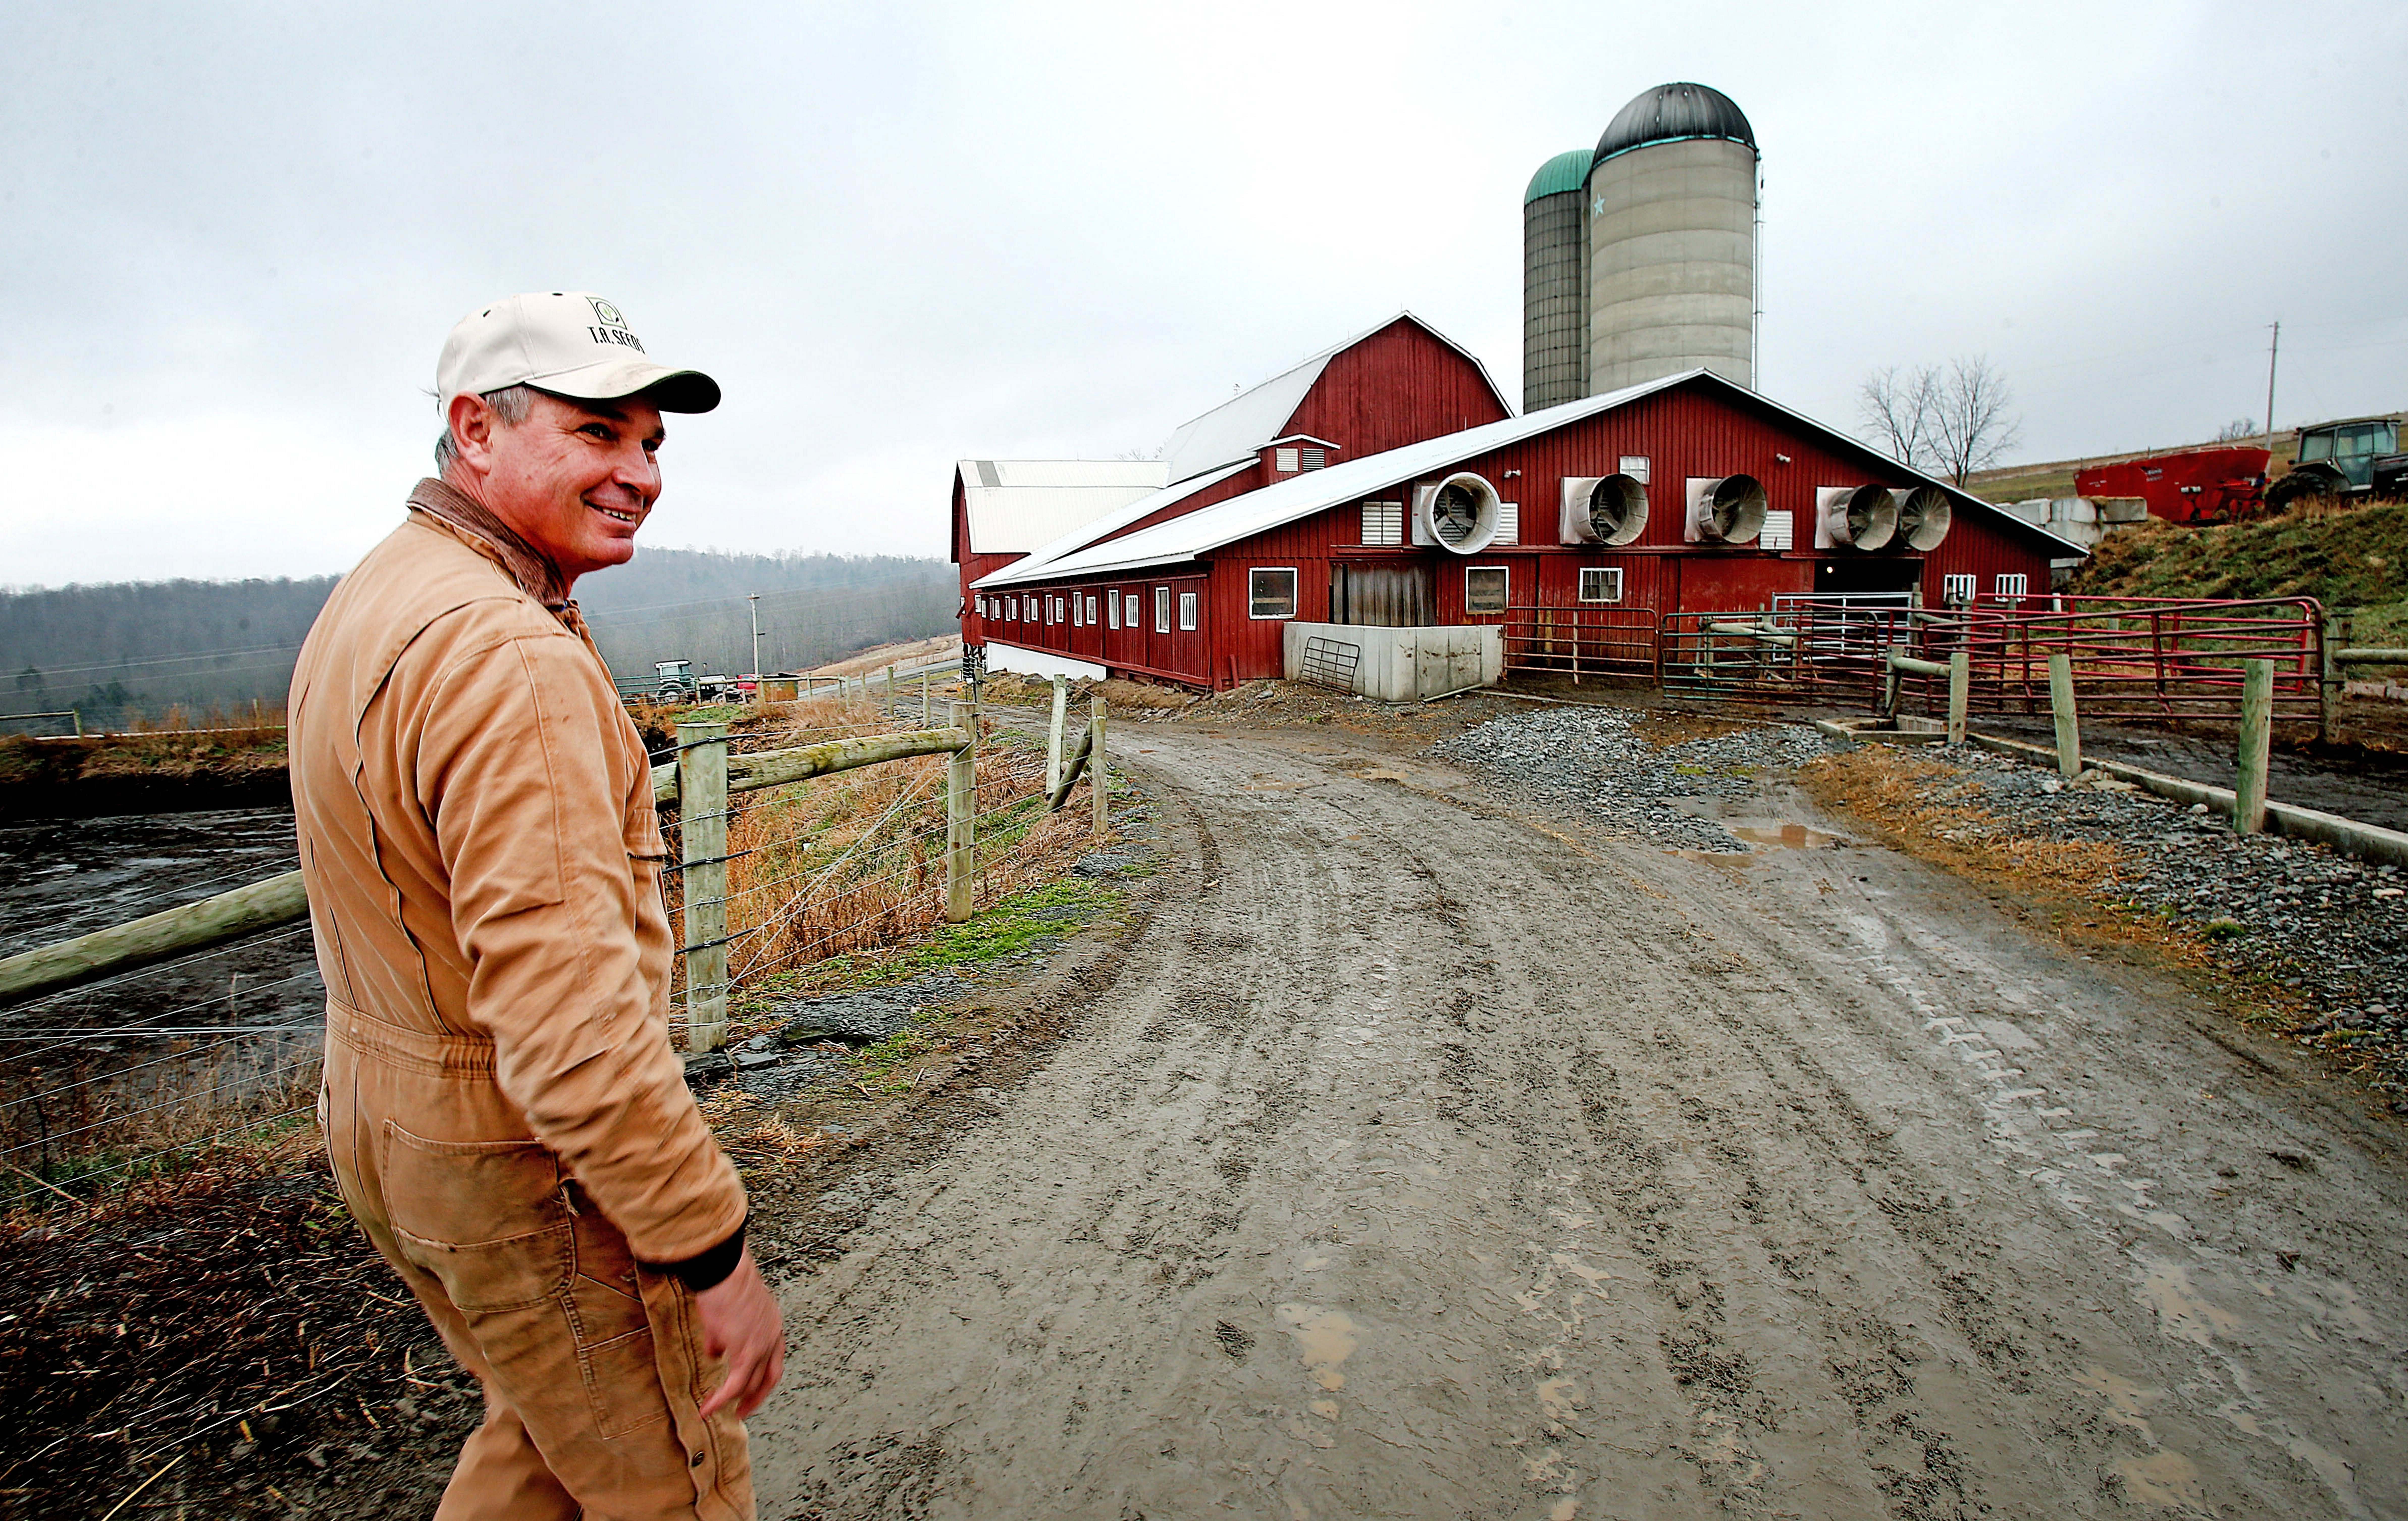 Jim Van Blarcom, who has nine gas wells on his farm, has expanded his business fivefold since 2009, erecting a new barn and investing in hog farming.